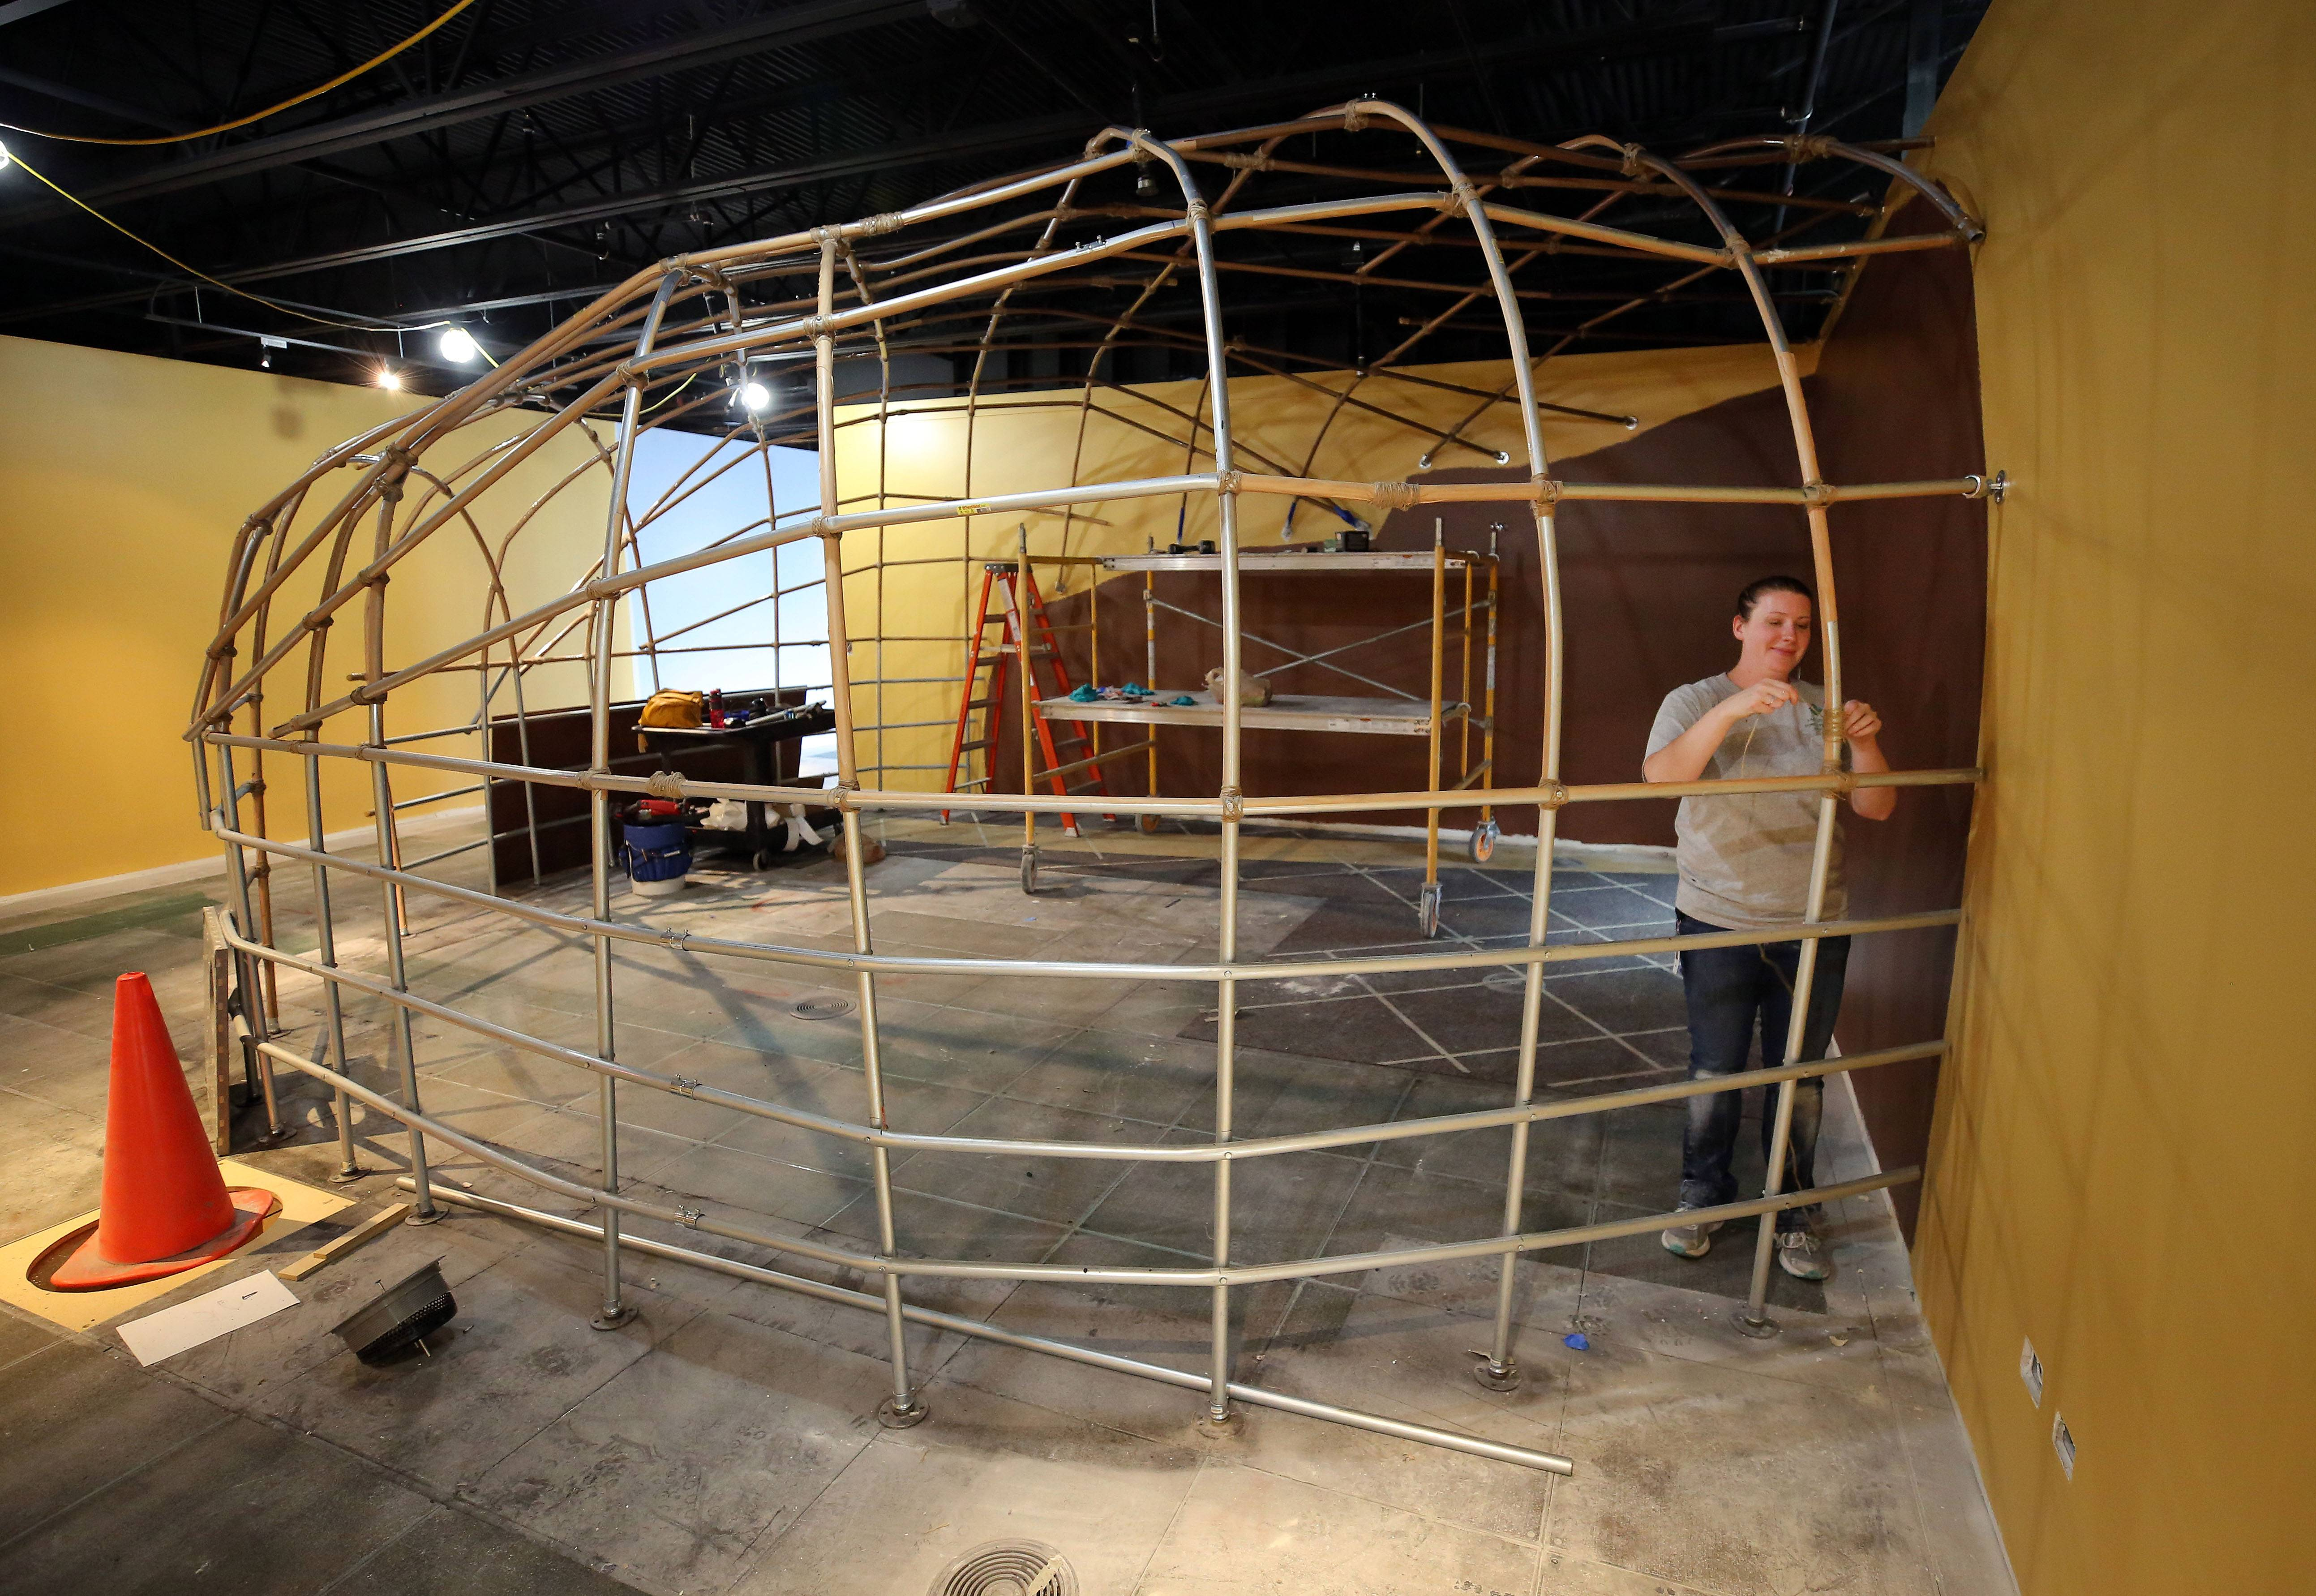 Work on new Lake County museum nearing finish line